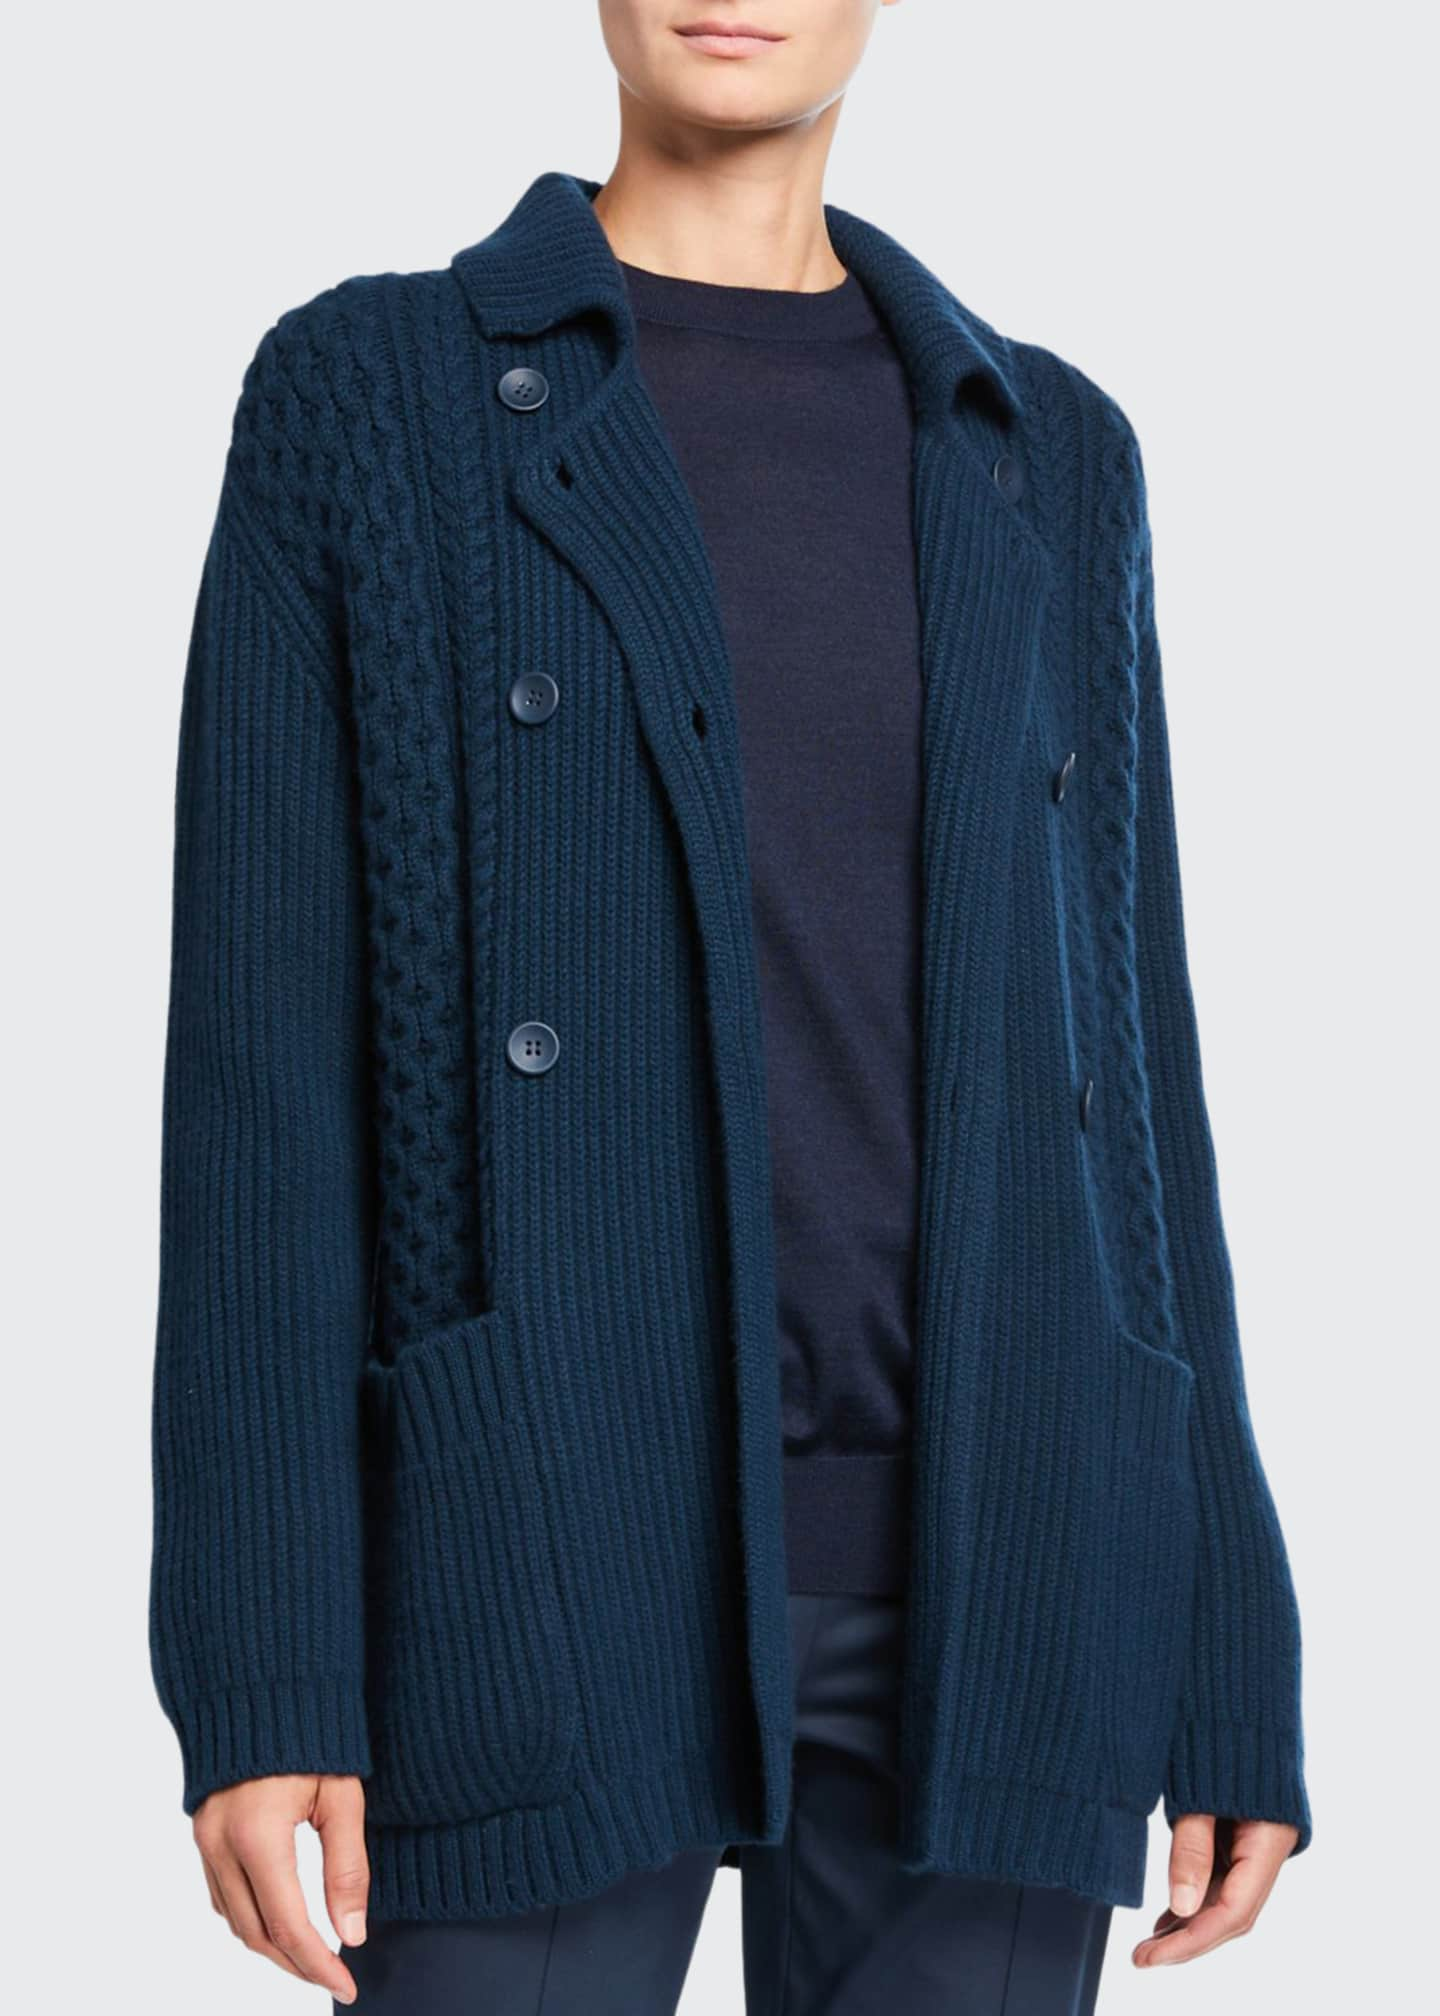 Loro Piana Baby Cashmere Cable-Knit Double-Breasted Sweater